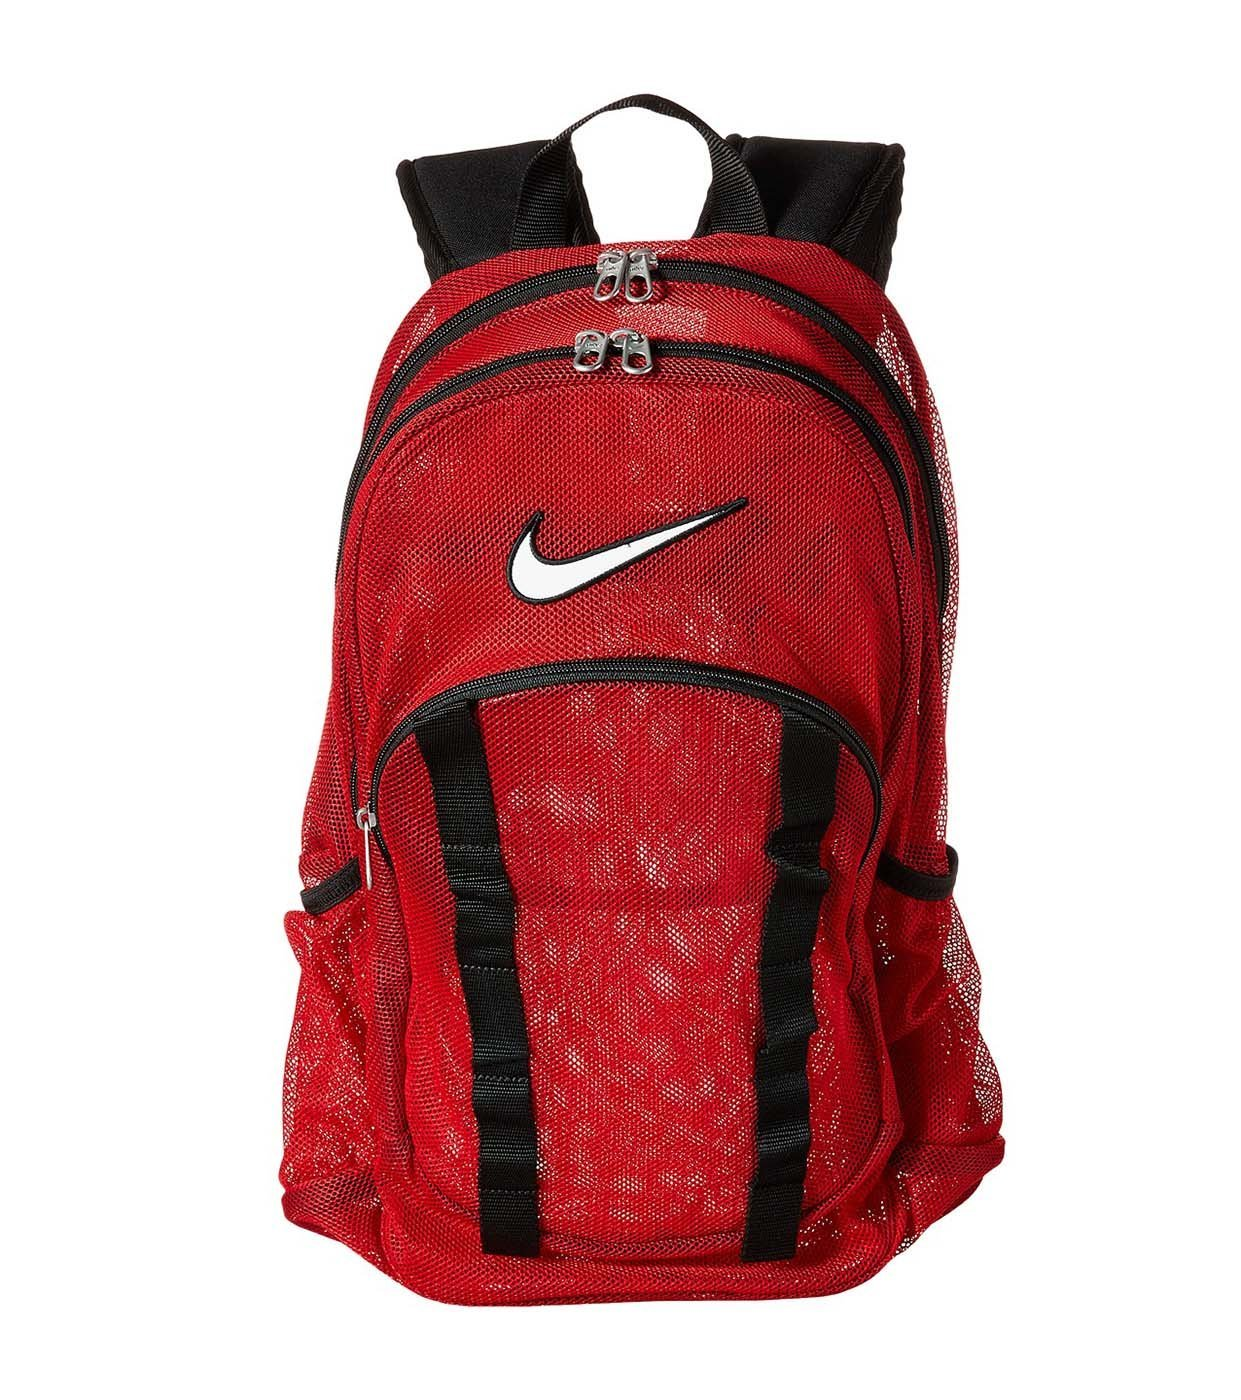 80aa34a183 Buy Nike Brasilia 7 Backpack Mesh Large Backpack BA5077 in Cheap ...